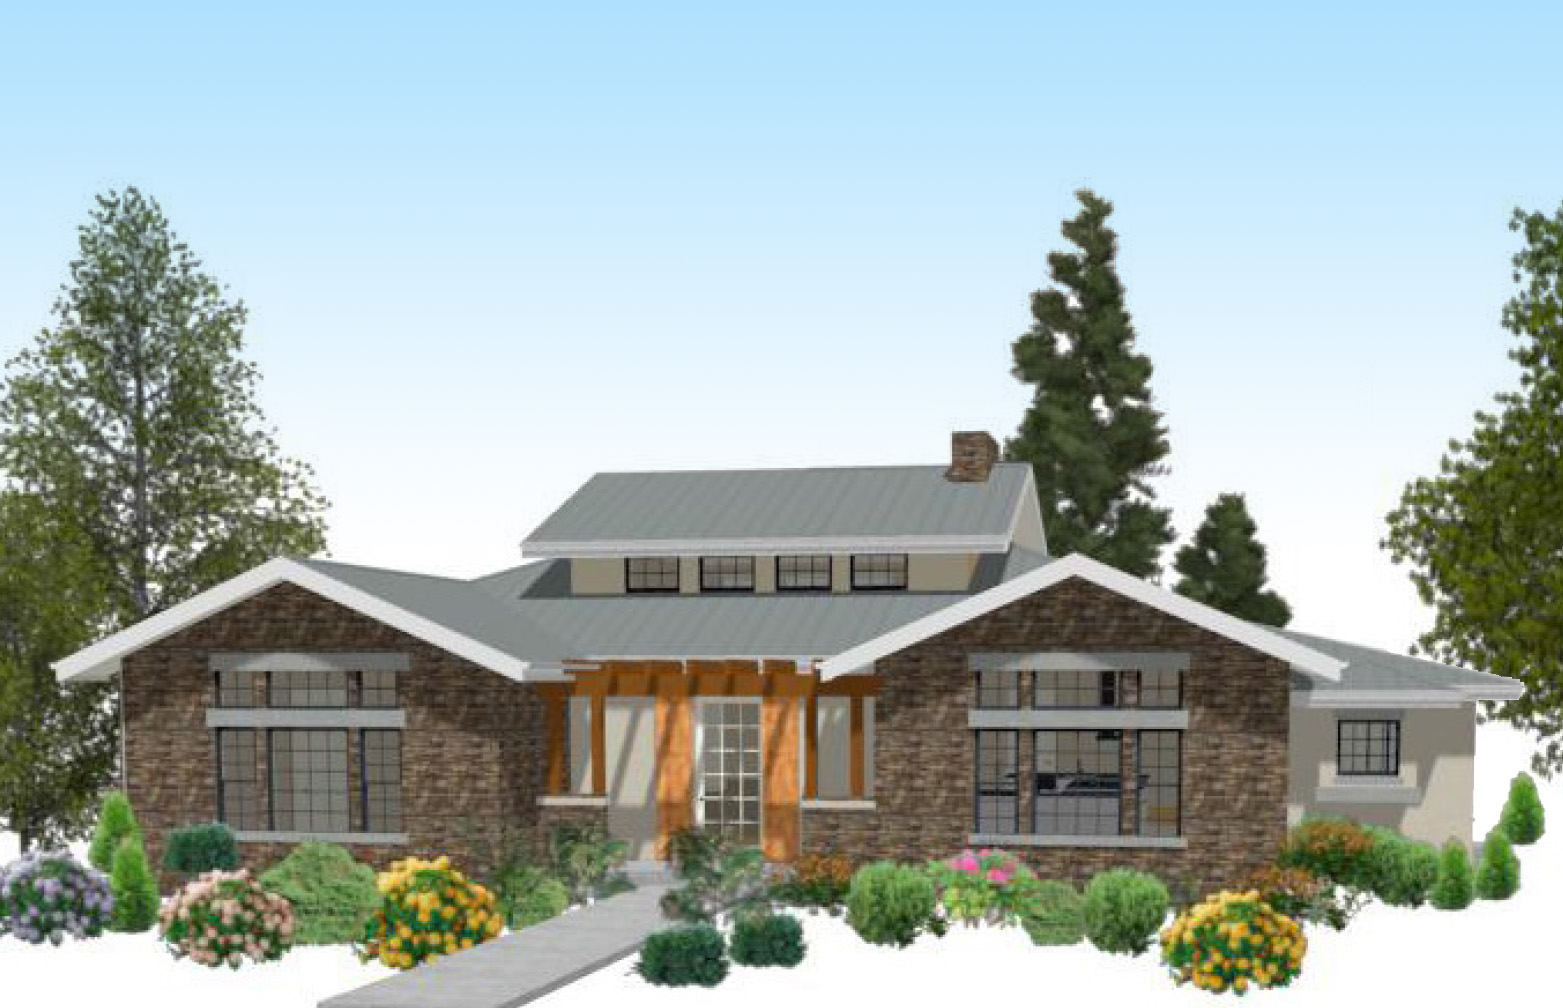 Texas-style Ranch - 12527rs Architectural Design